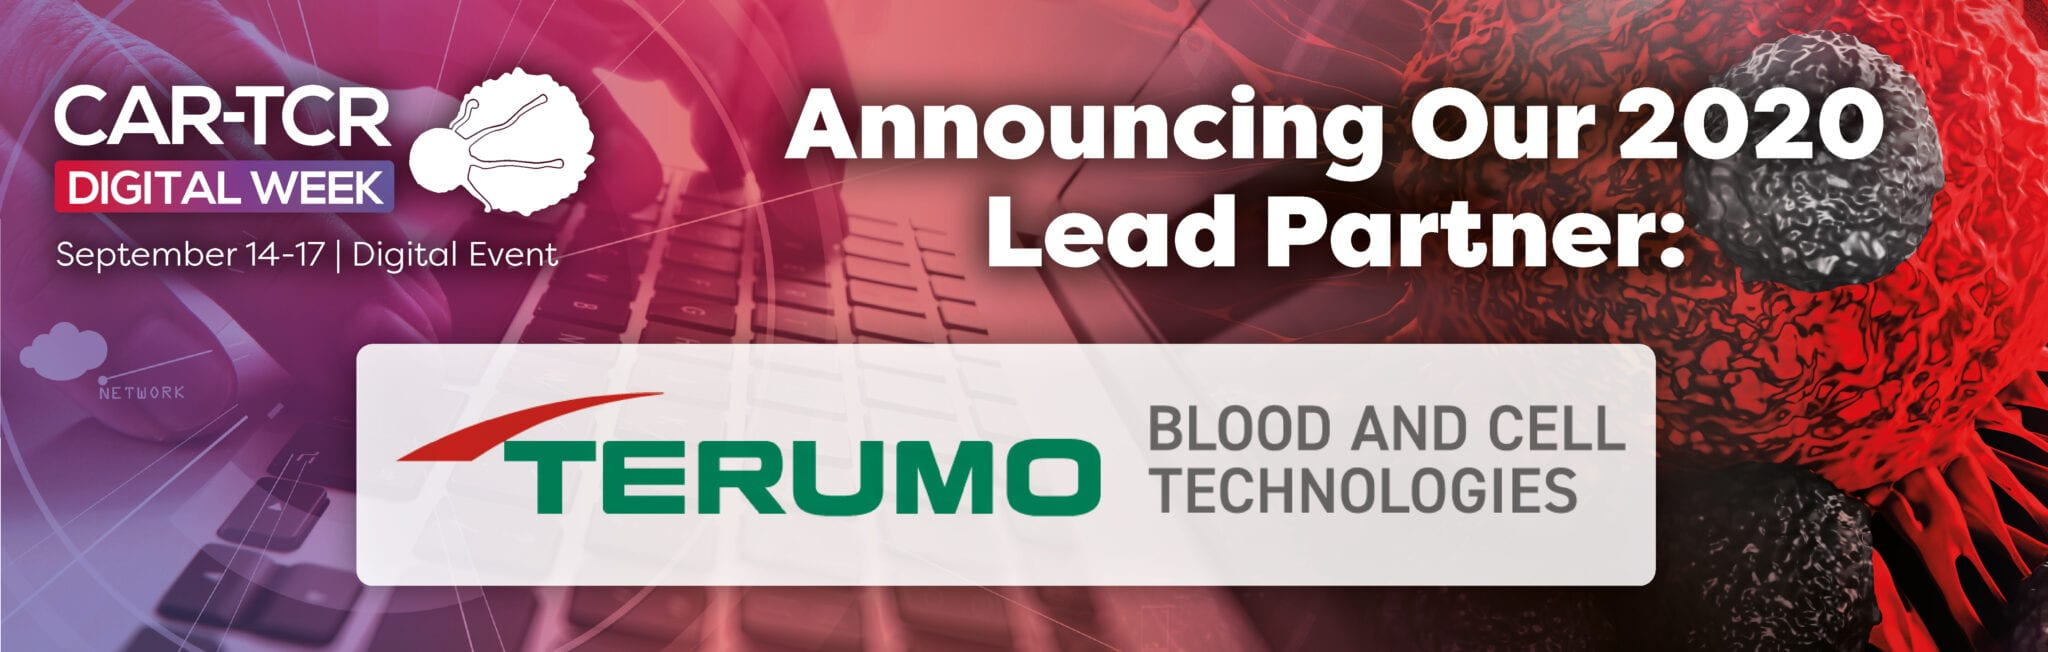 CART Digital Week - Terumo Lead Partner